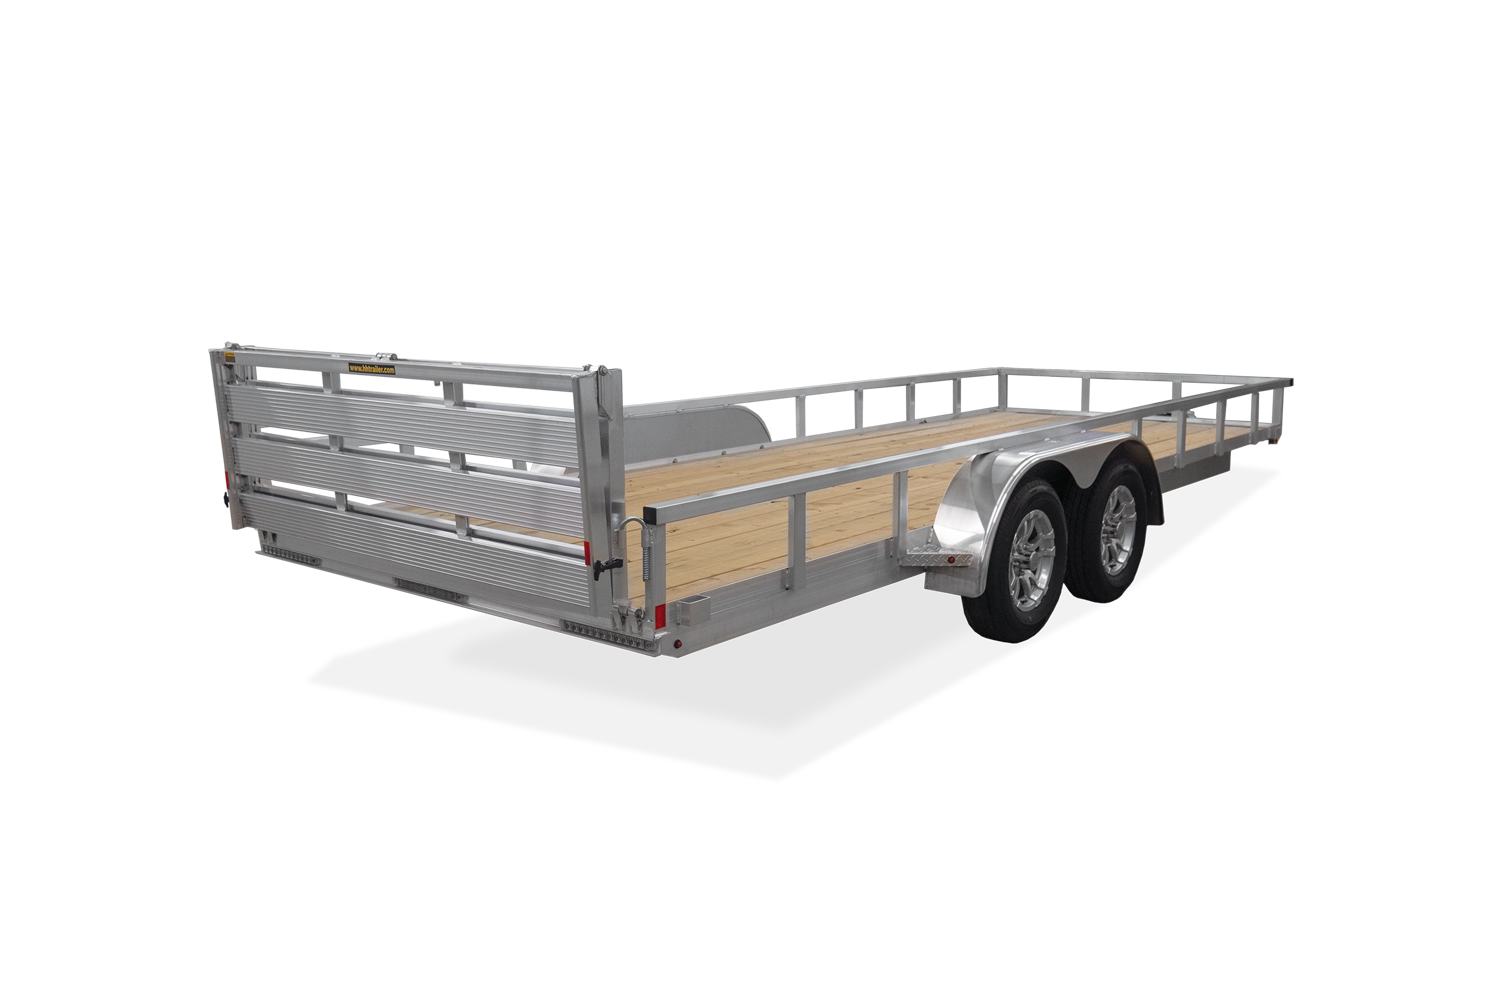 H&H Trailers Aluminum Rail Side Rear Image